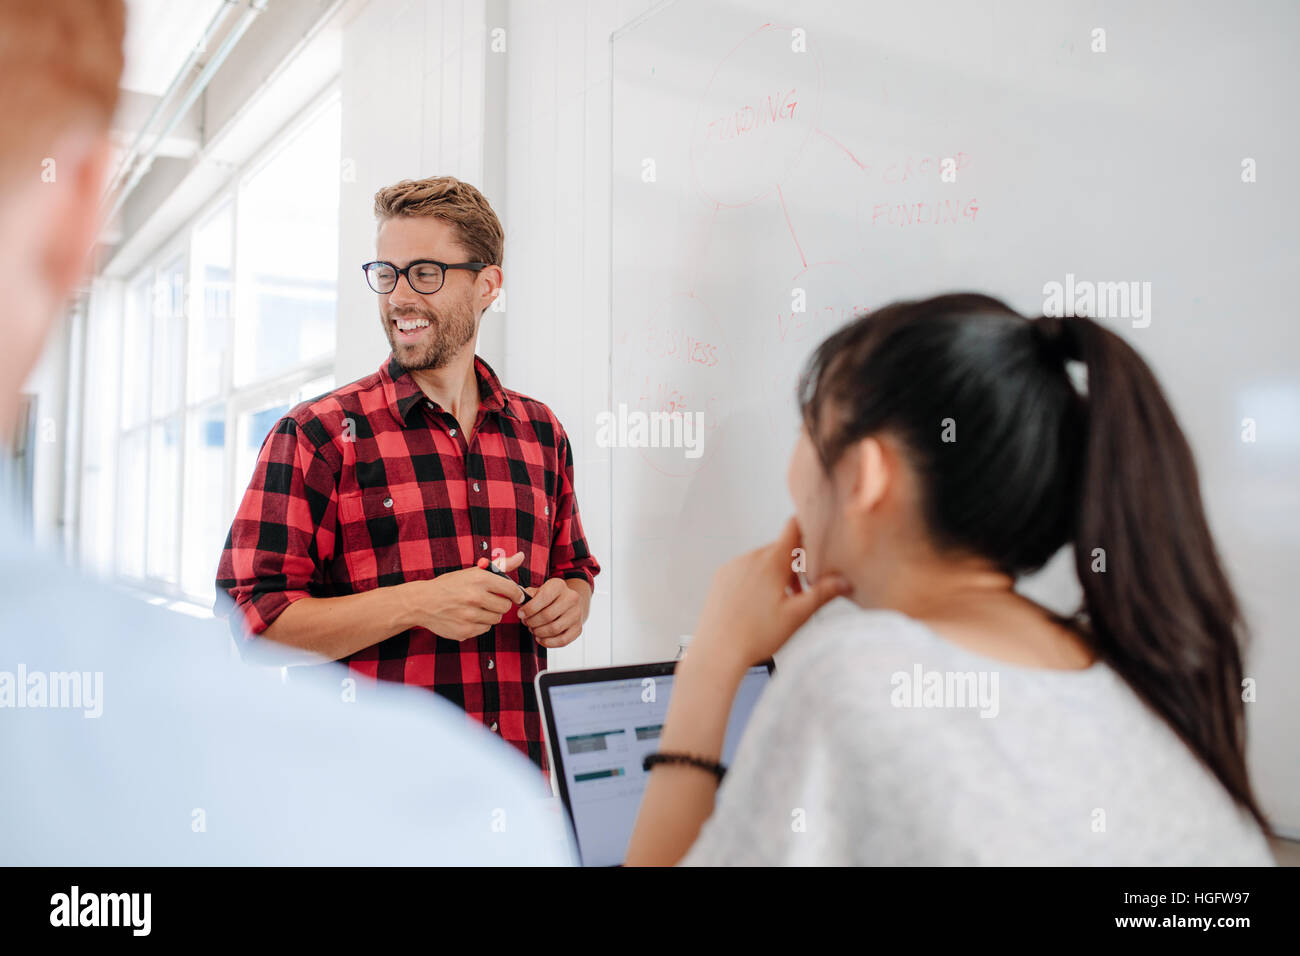 Happy young businessman in casuals giving presentation on white board to colleagues in conference room. Businessman - Stock Image